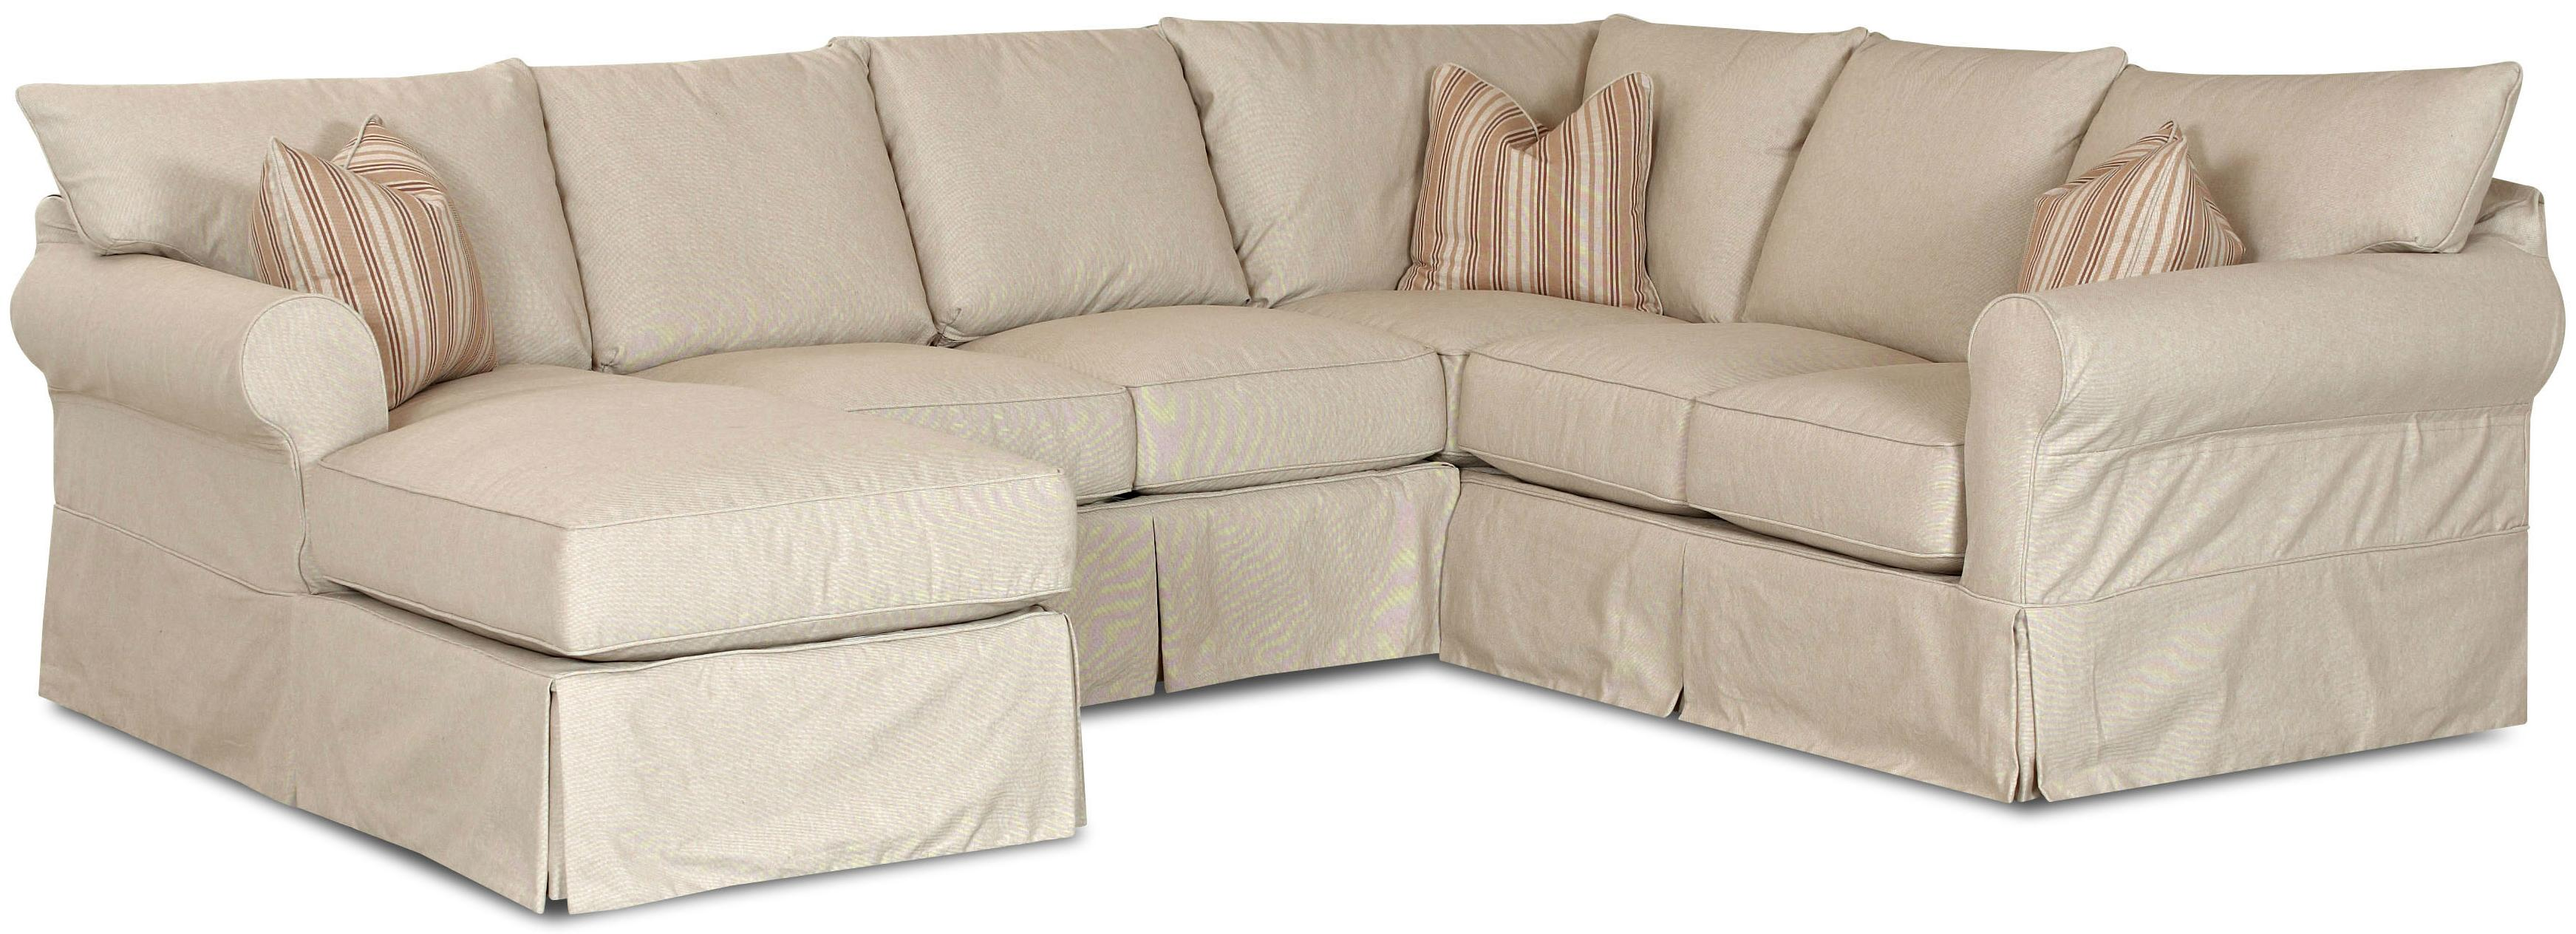 admirable brown sectional sofa covers